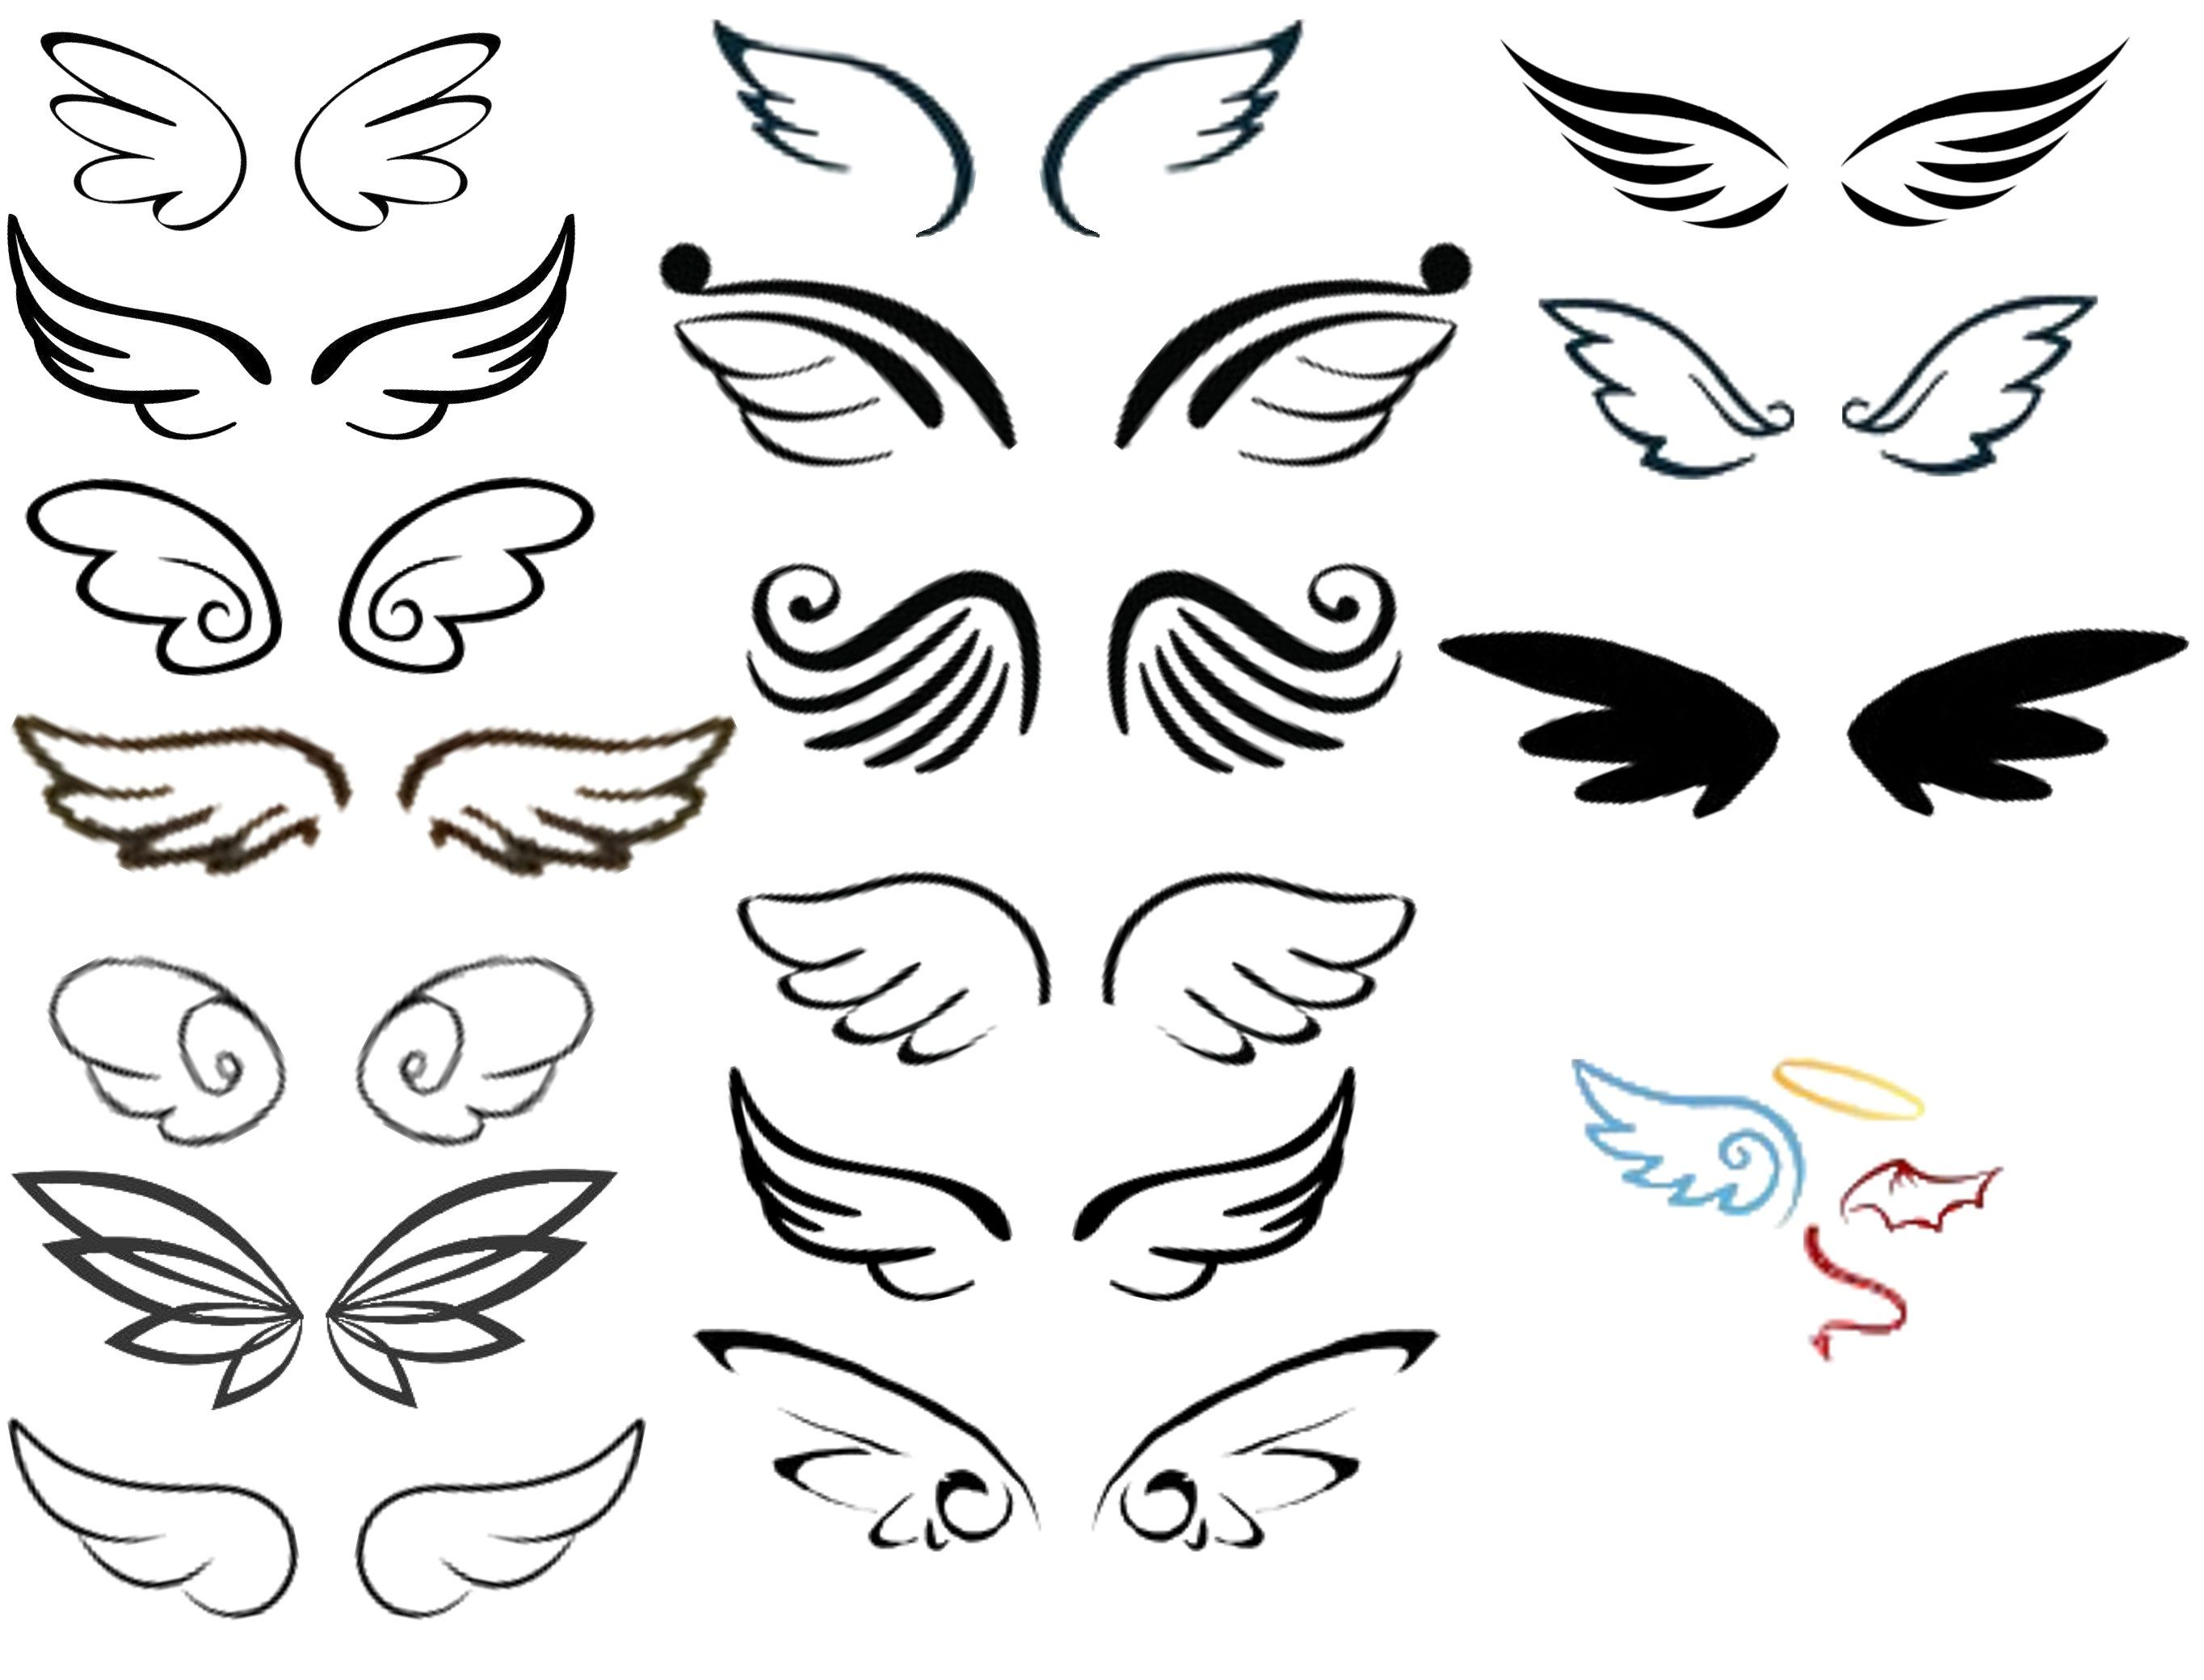 Angel Wings Tattoo Small Simple: Wing Pairs I Made From All Choices So Far I Saw And Let's